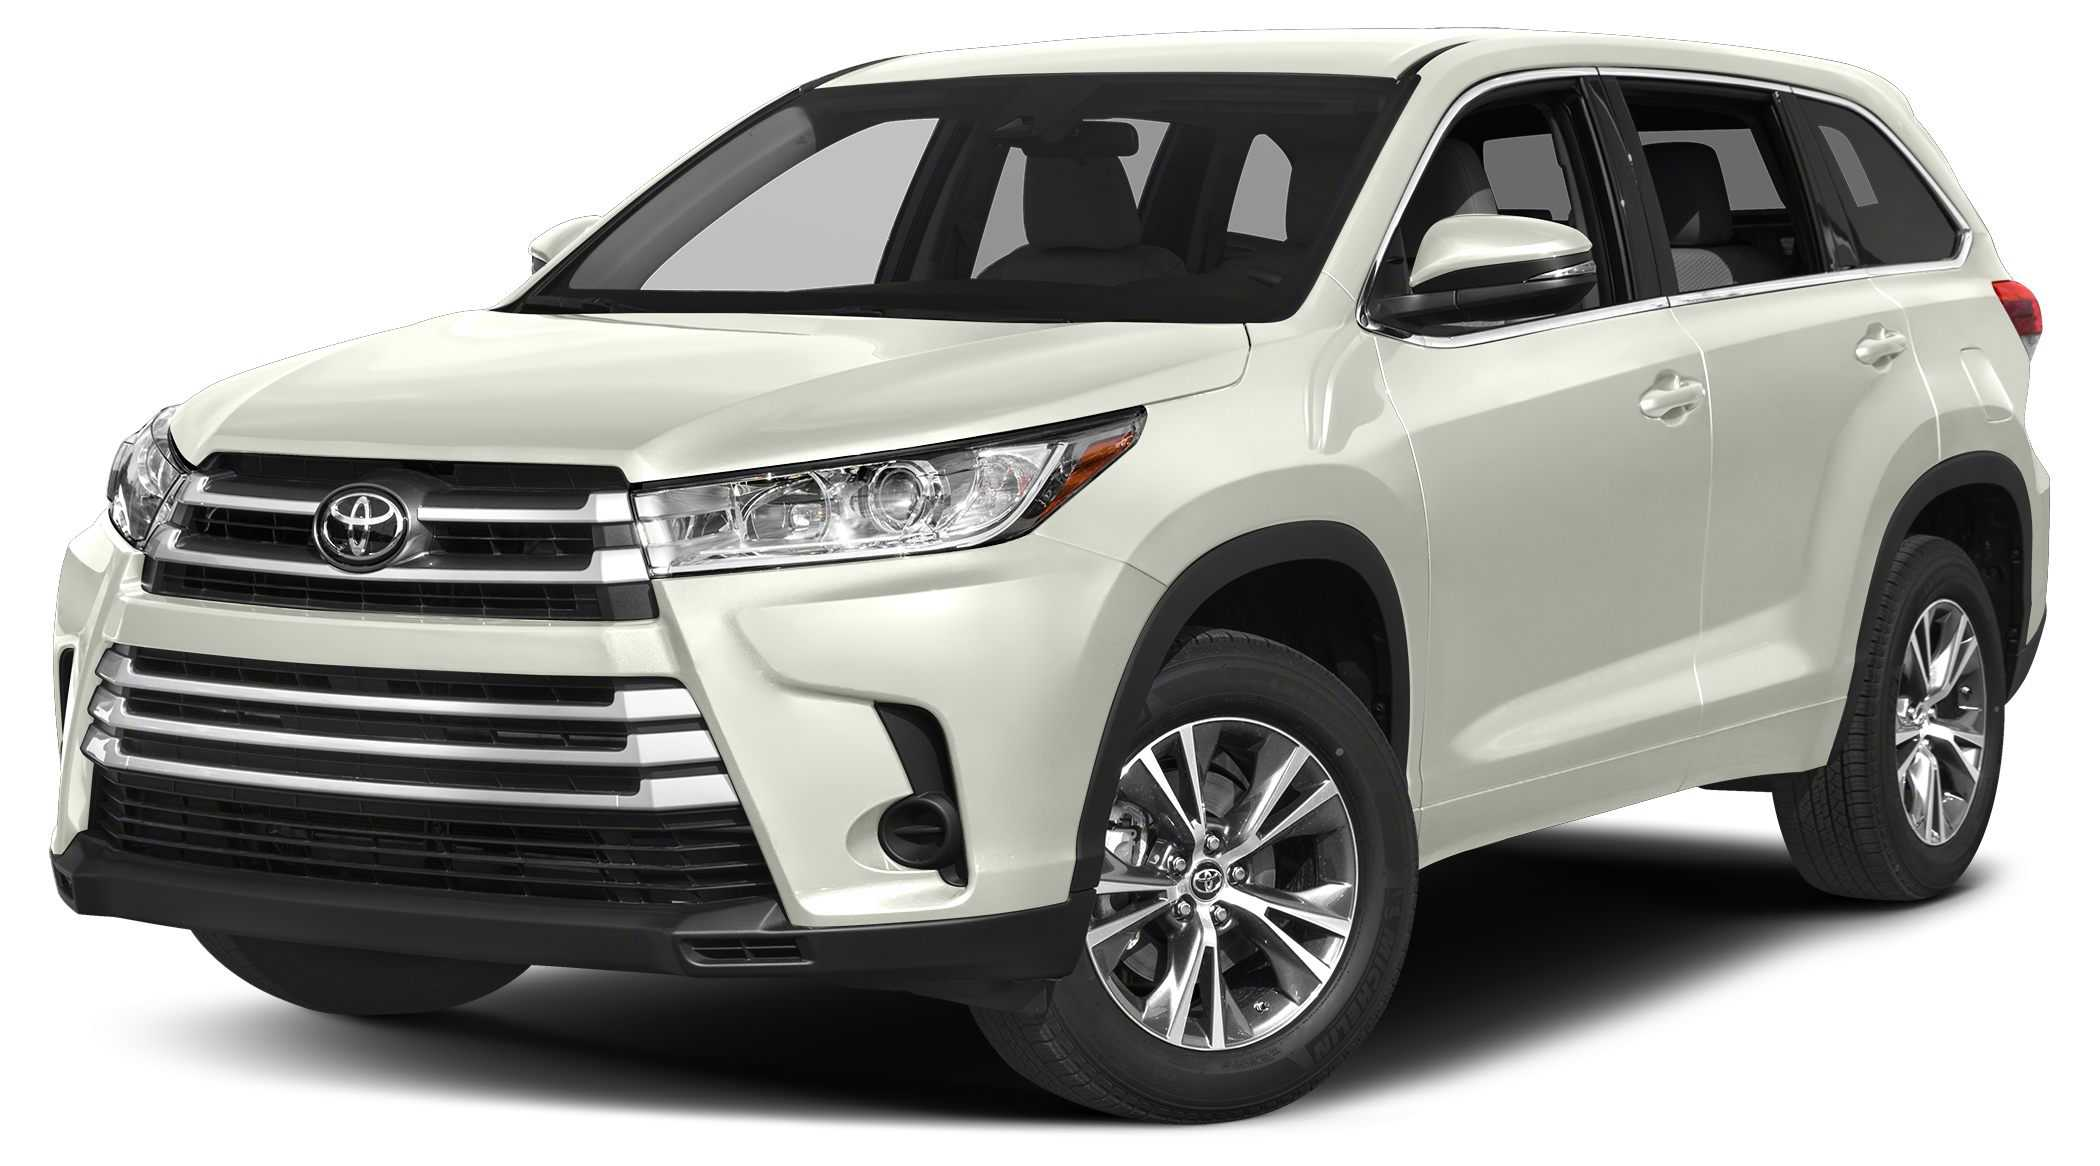 2017 toyota highlander for sale in portland me. Black Bedroom Furniture Sets. Home Design Ideas